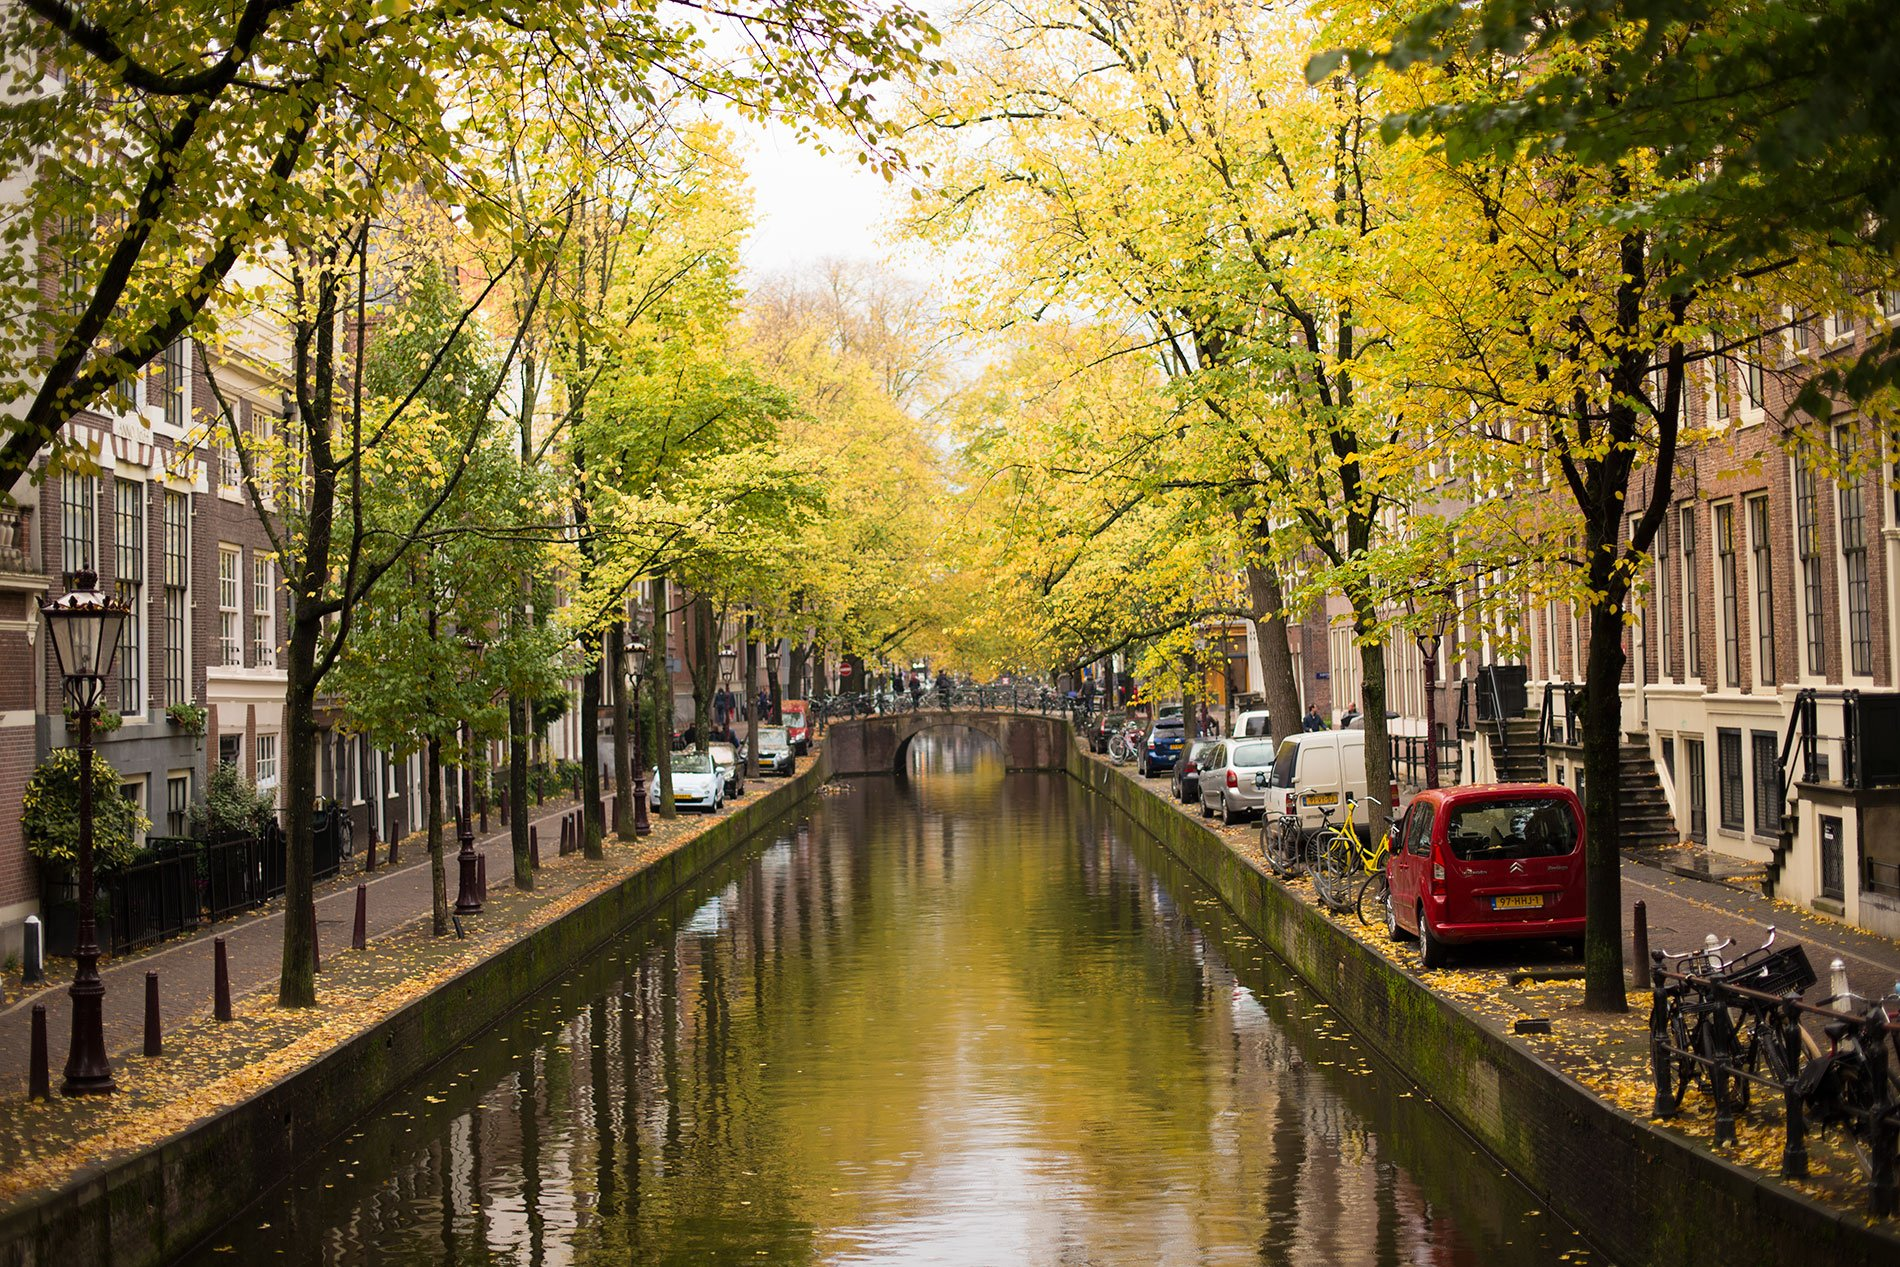 Amsterdam canals during autumn